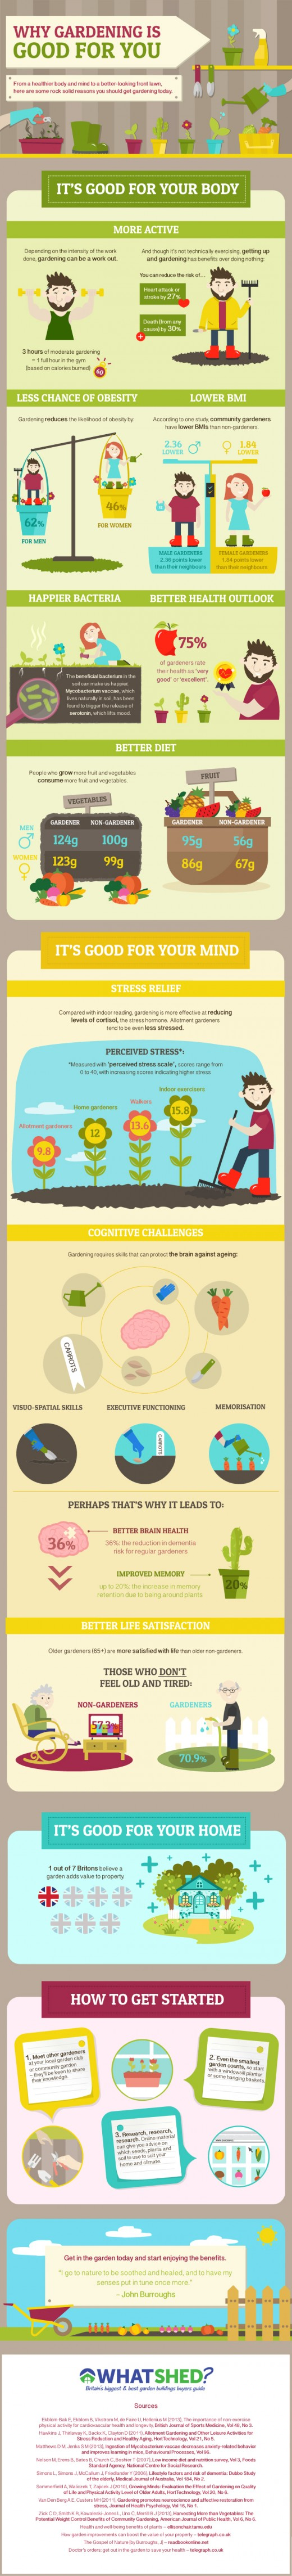 This awesome infographic is by WhatShed!